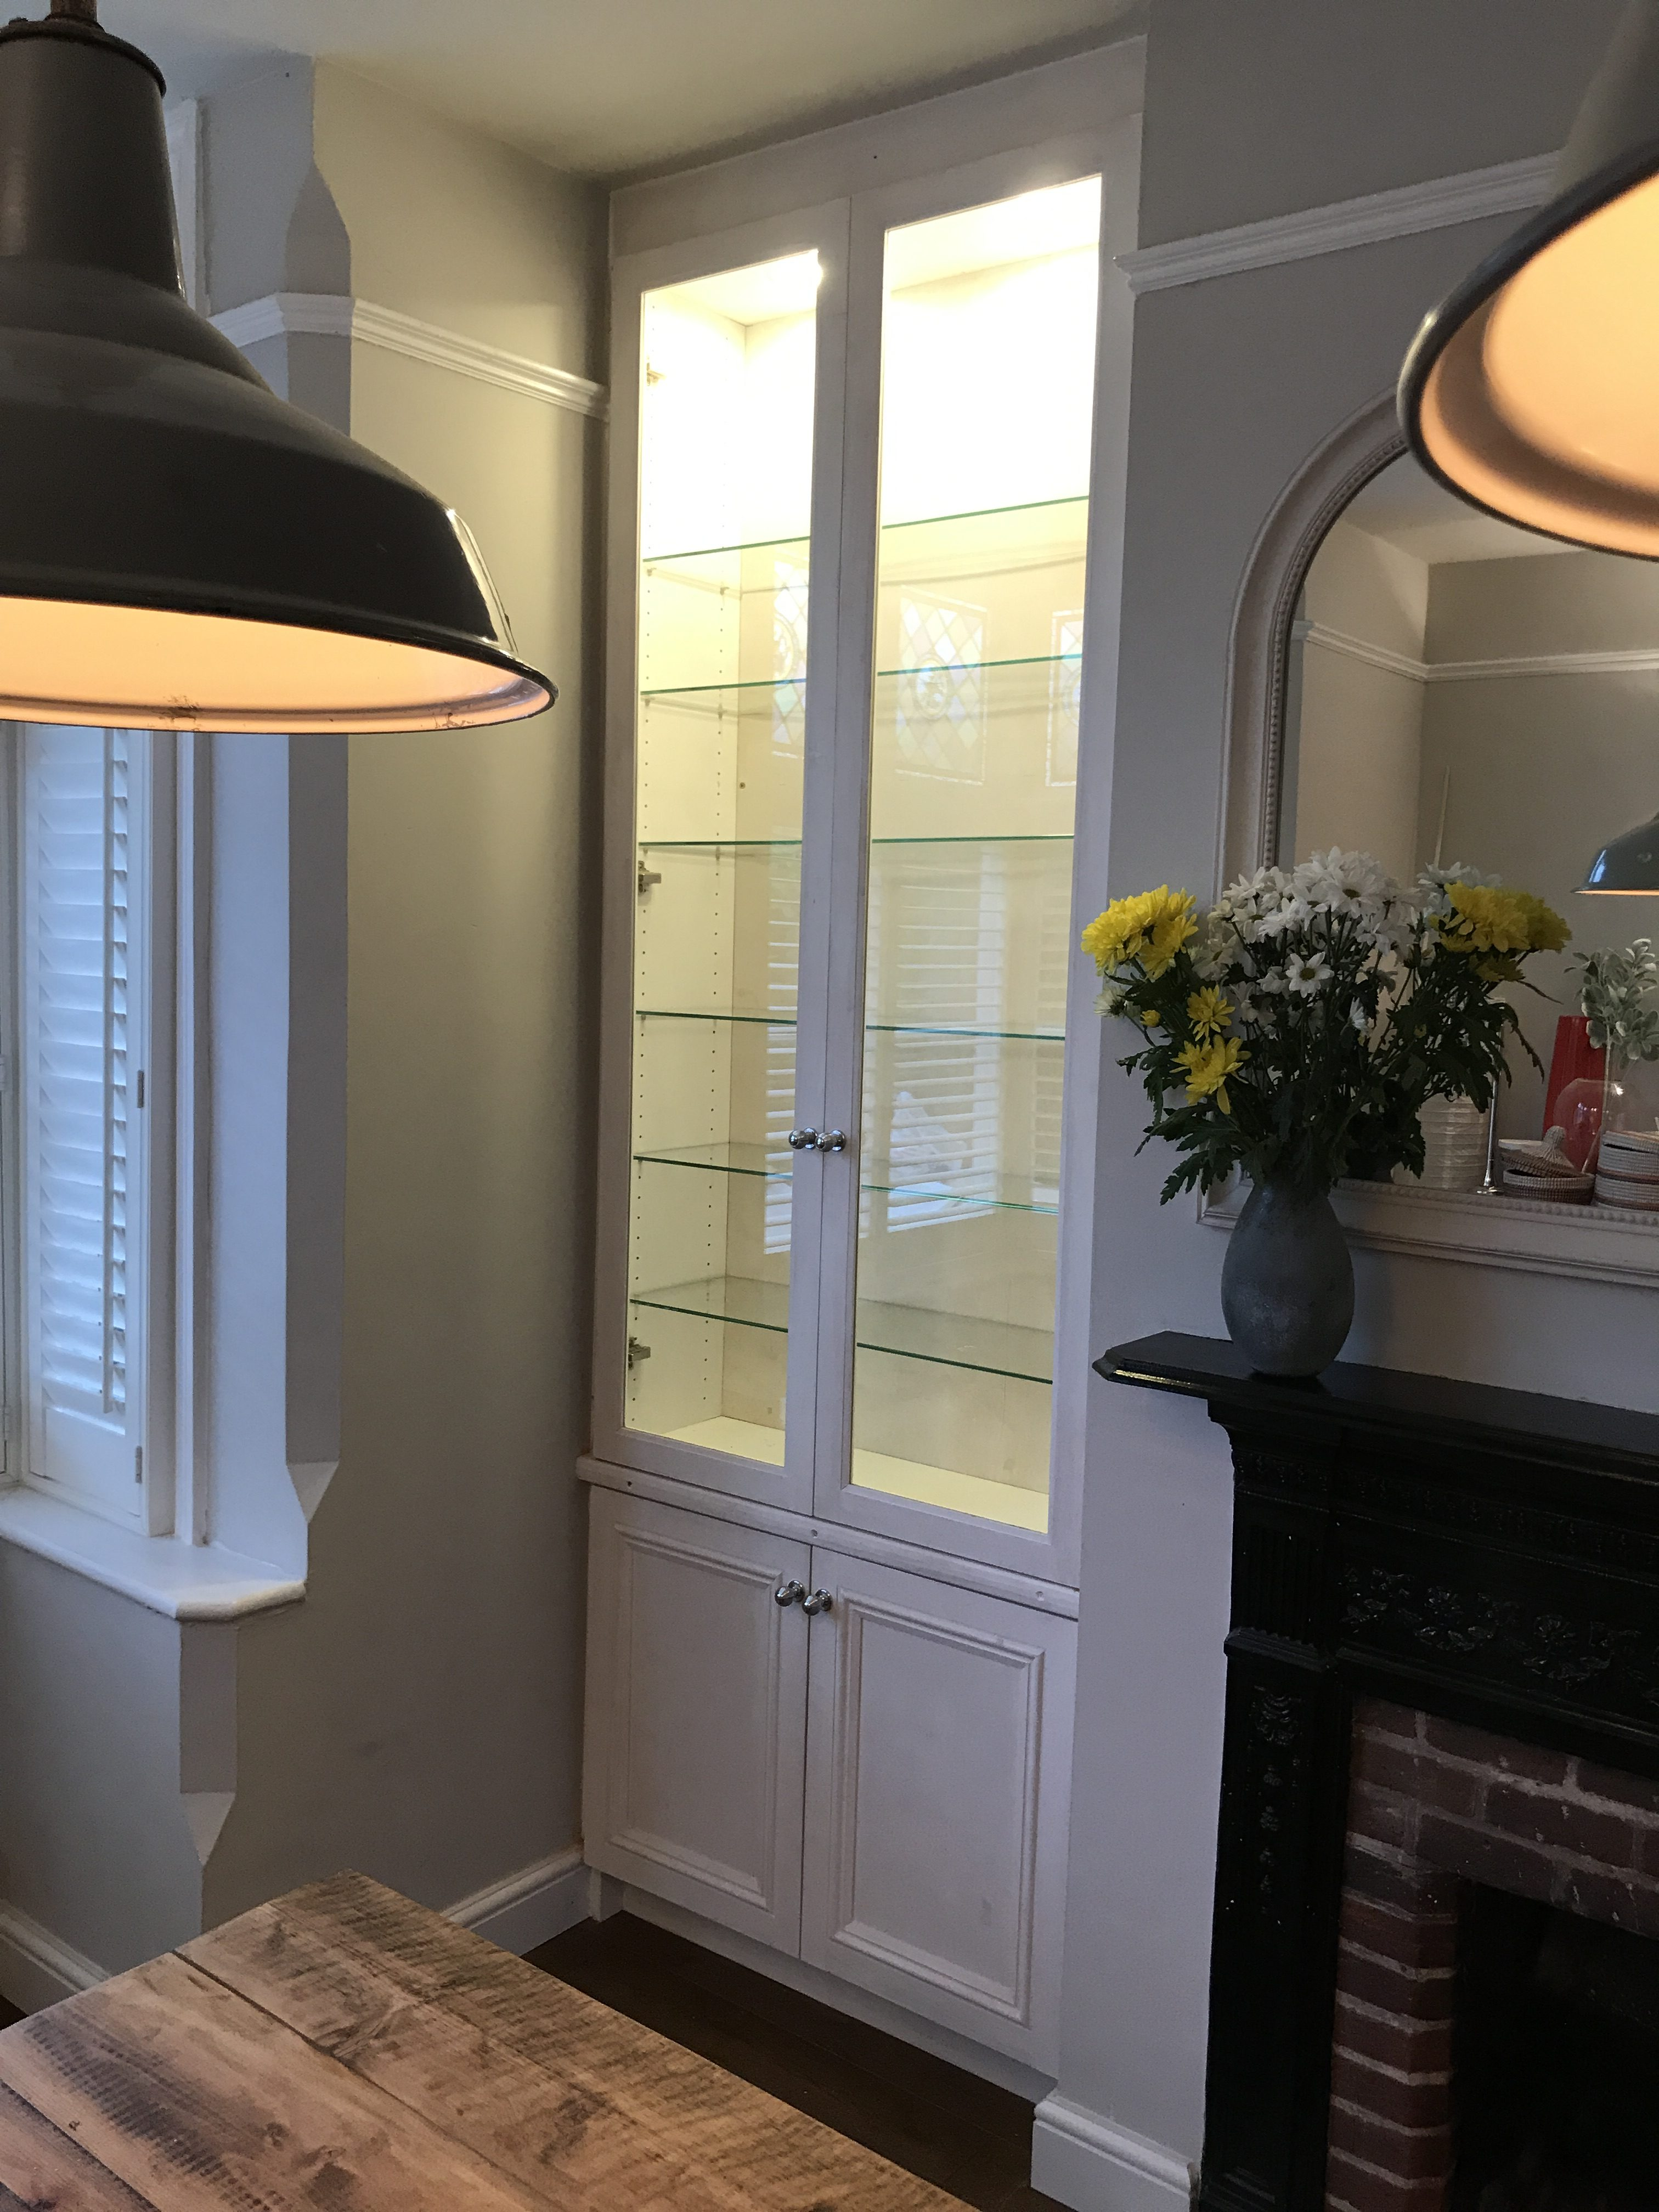 Glass fronted display unit